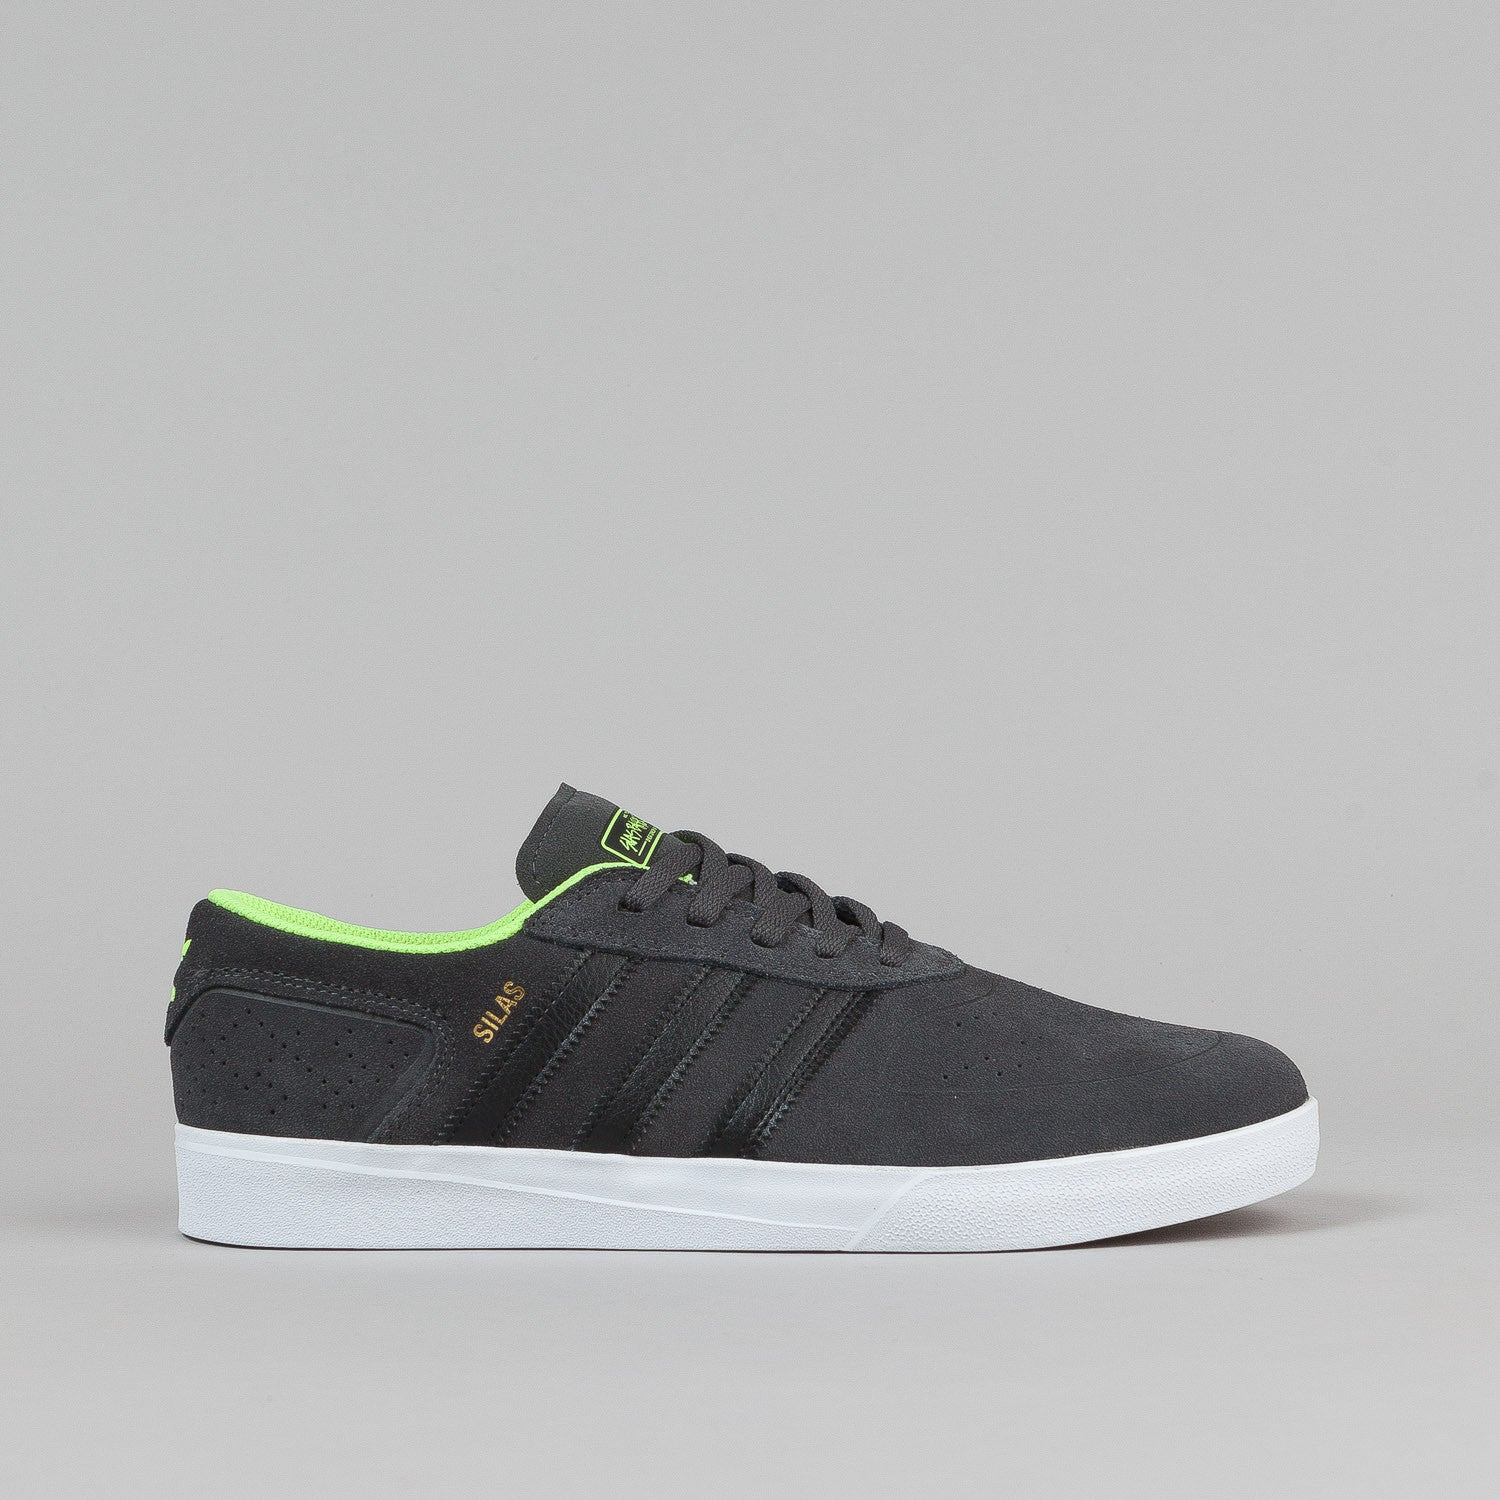 Adidas Silas Vulc ADV Shoes